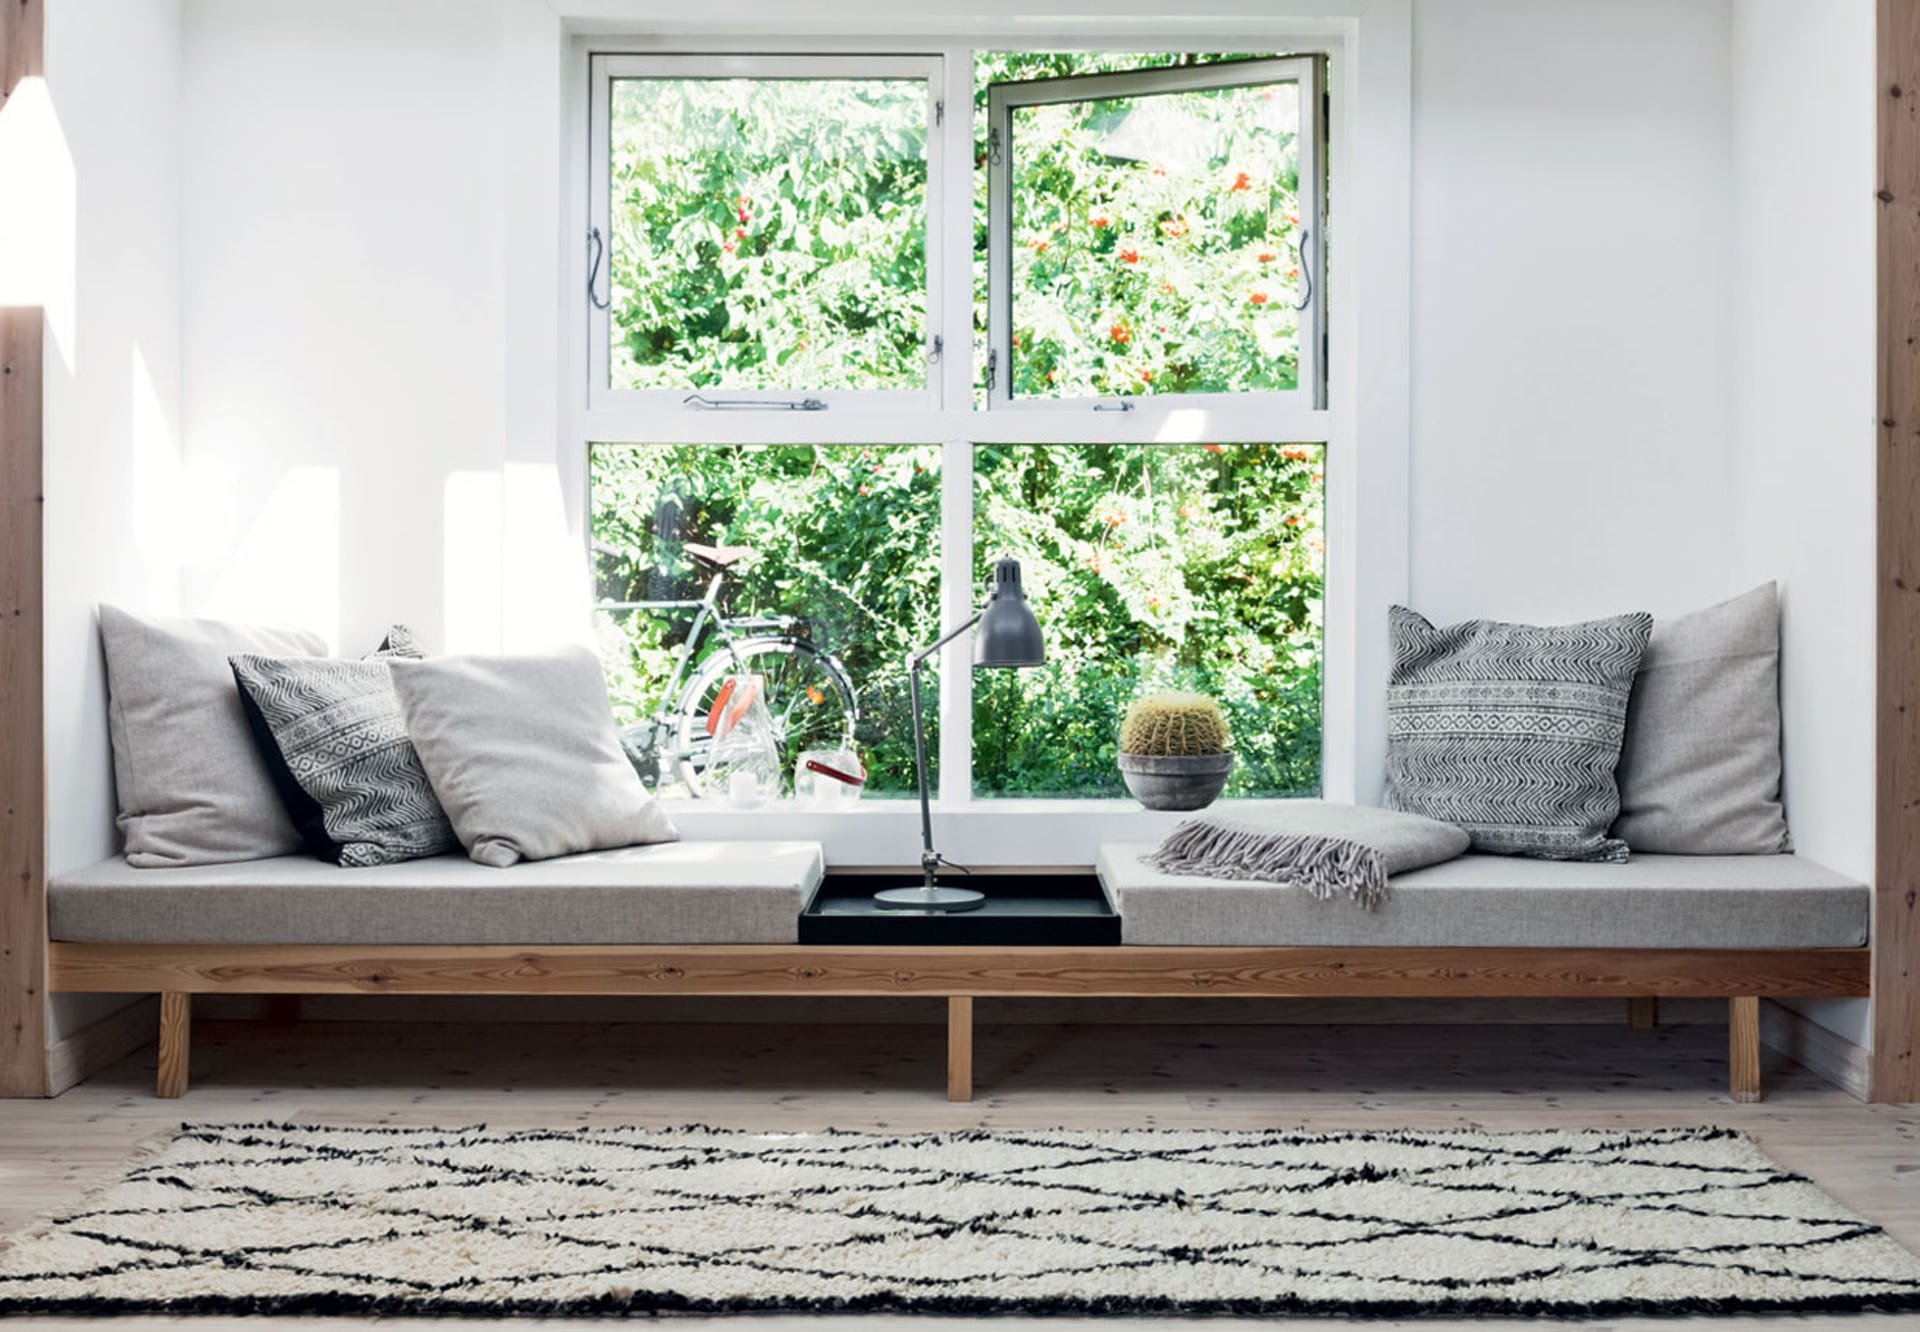 6 Types Of Daybeds That Will Enhance Your Living Room Or Any Other Room The Gem Picker